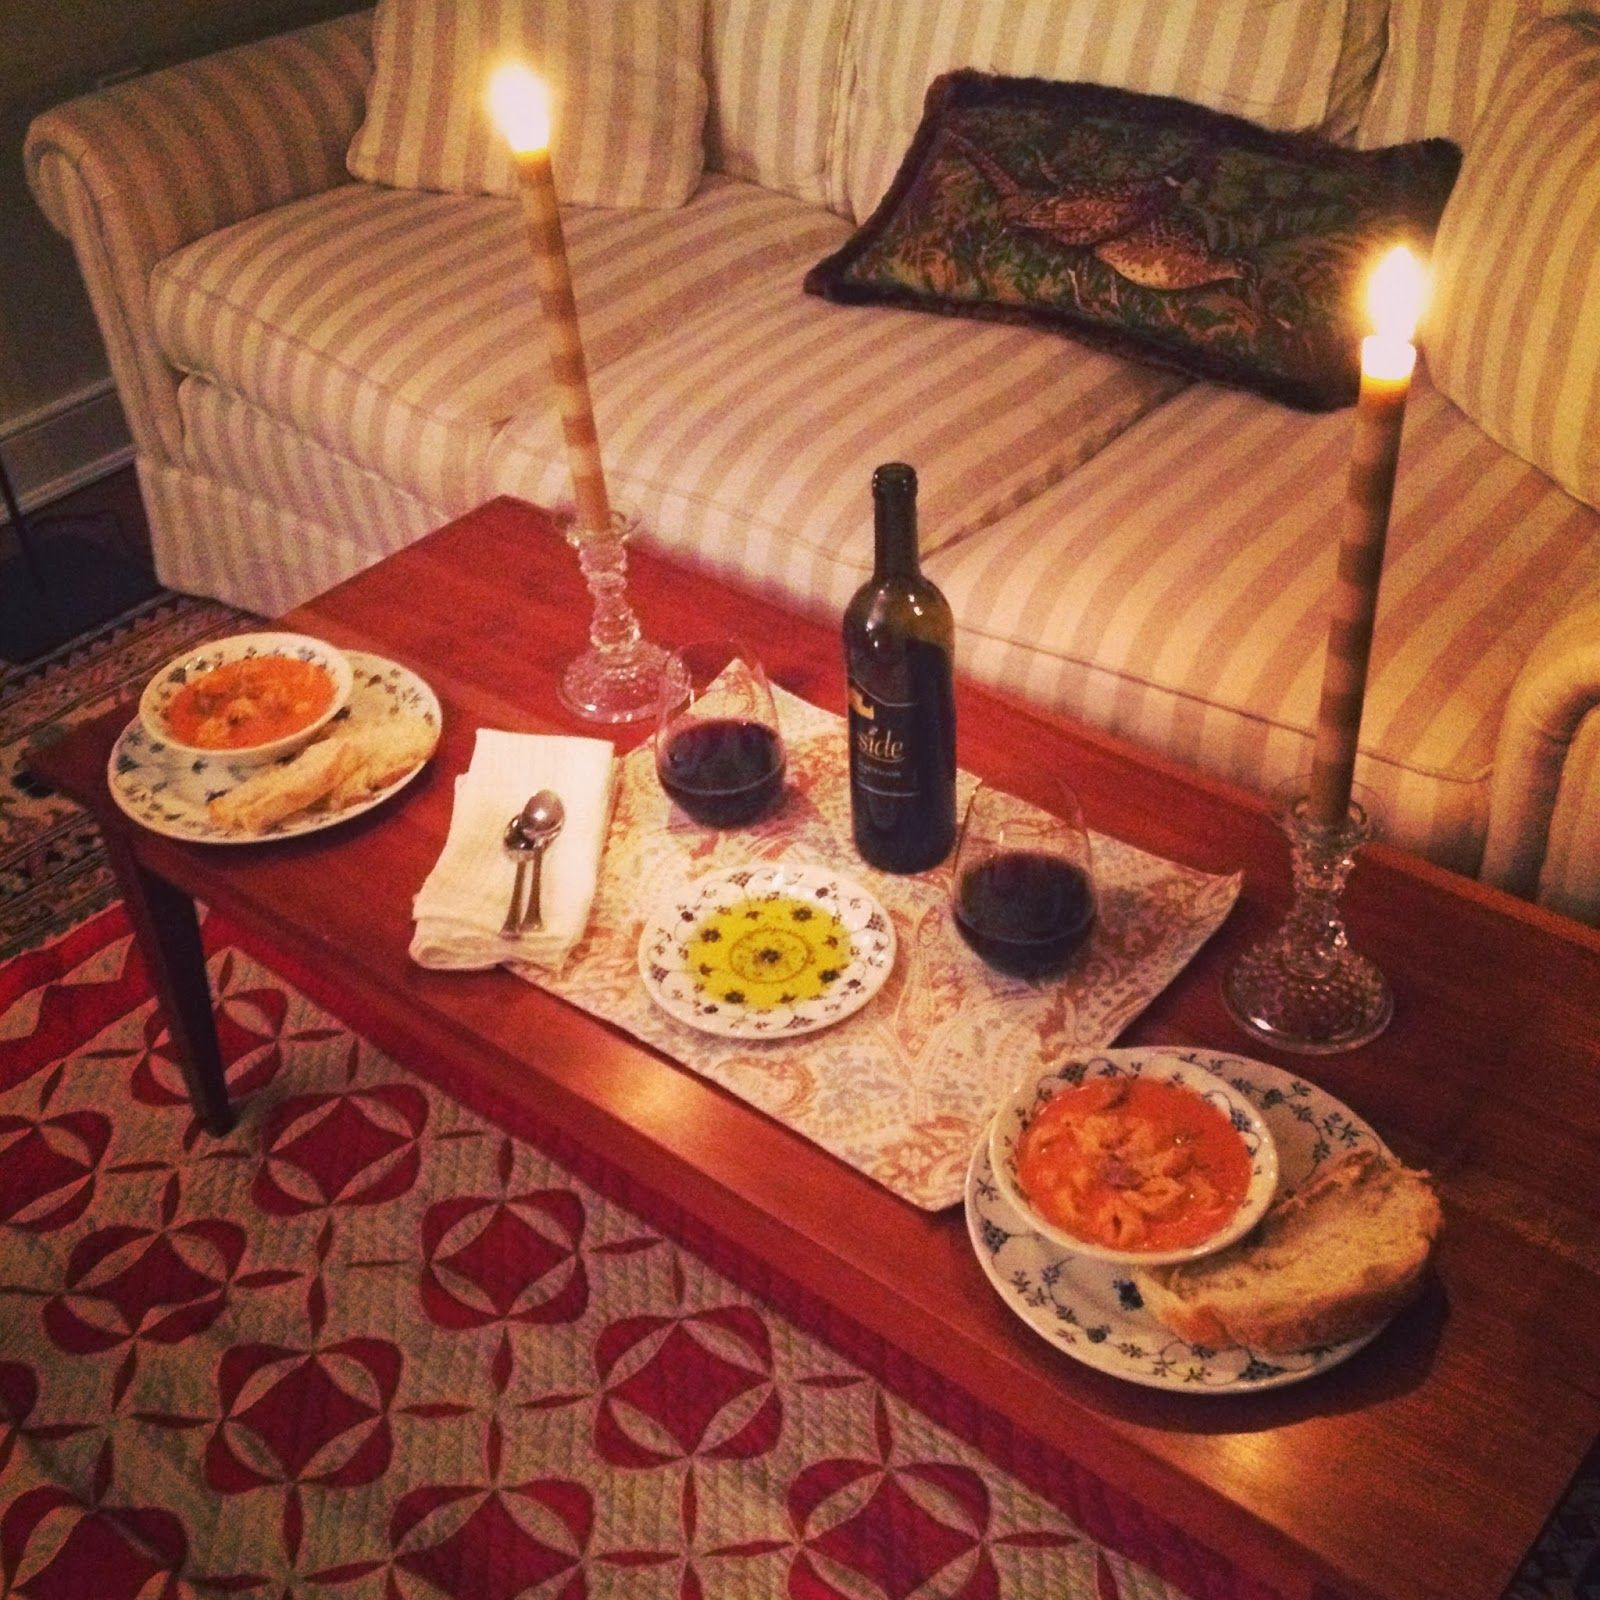 Romantic Dinner At Home On Floor Home Decor Candle Light Dinner